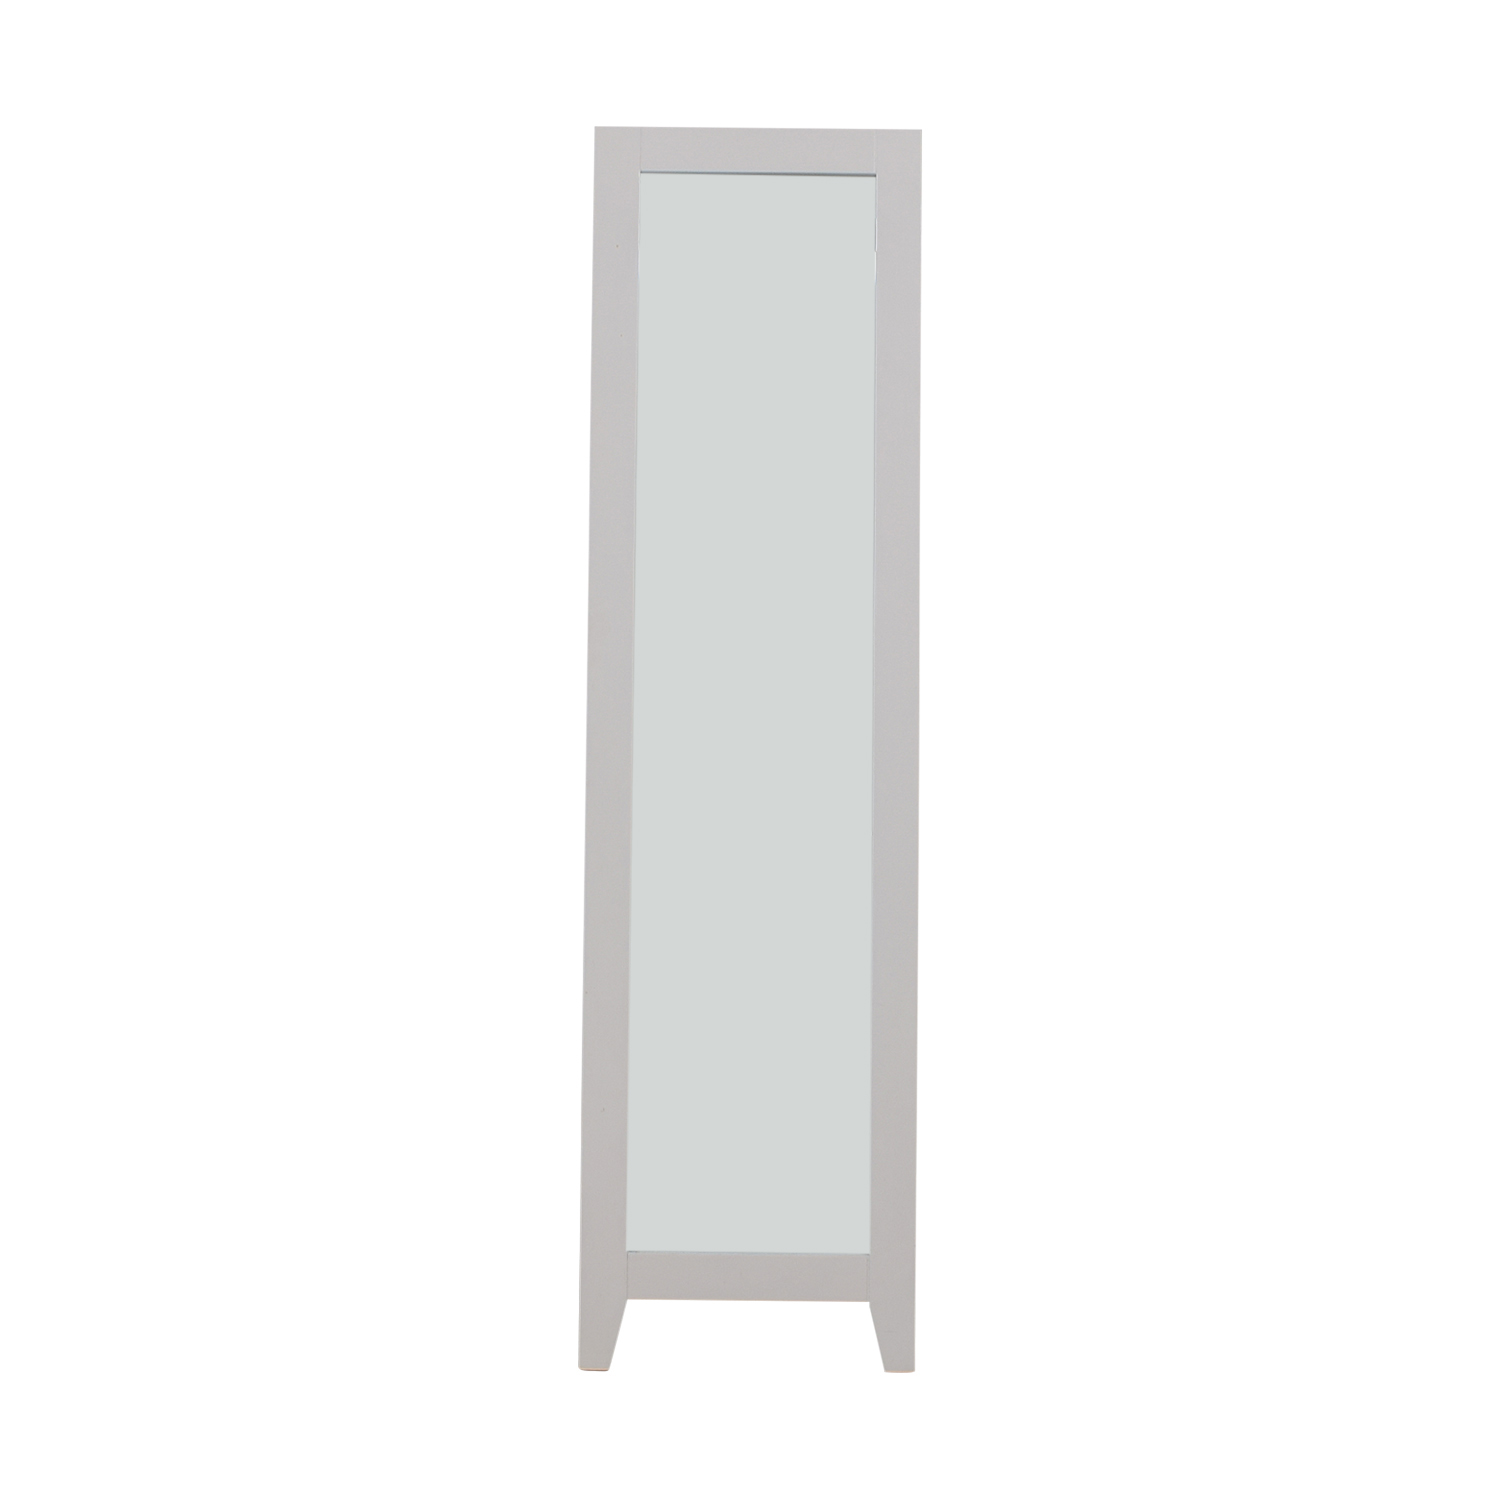 63% OFF - IKEA IKEA White Mirror / Decor